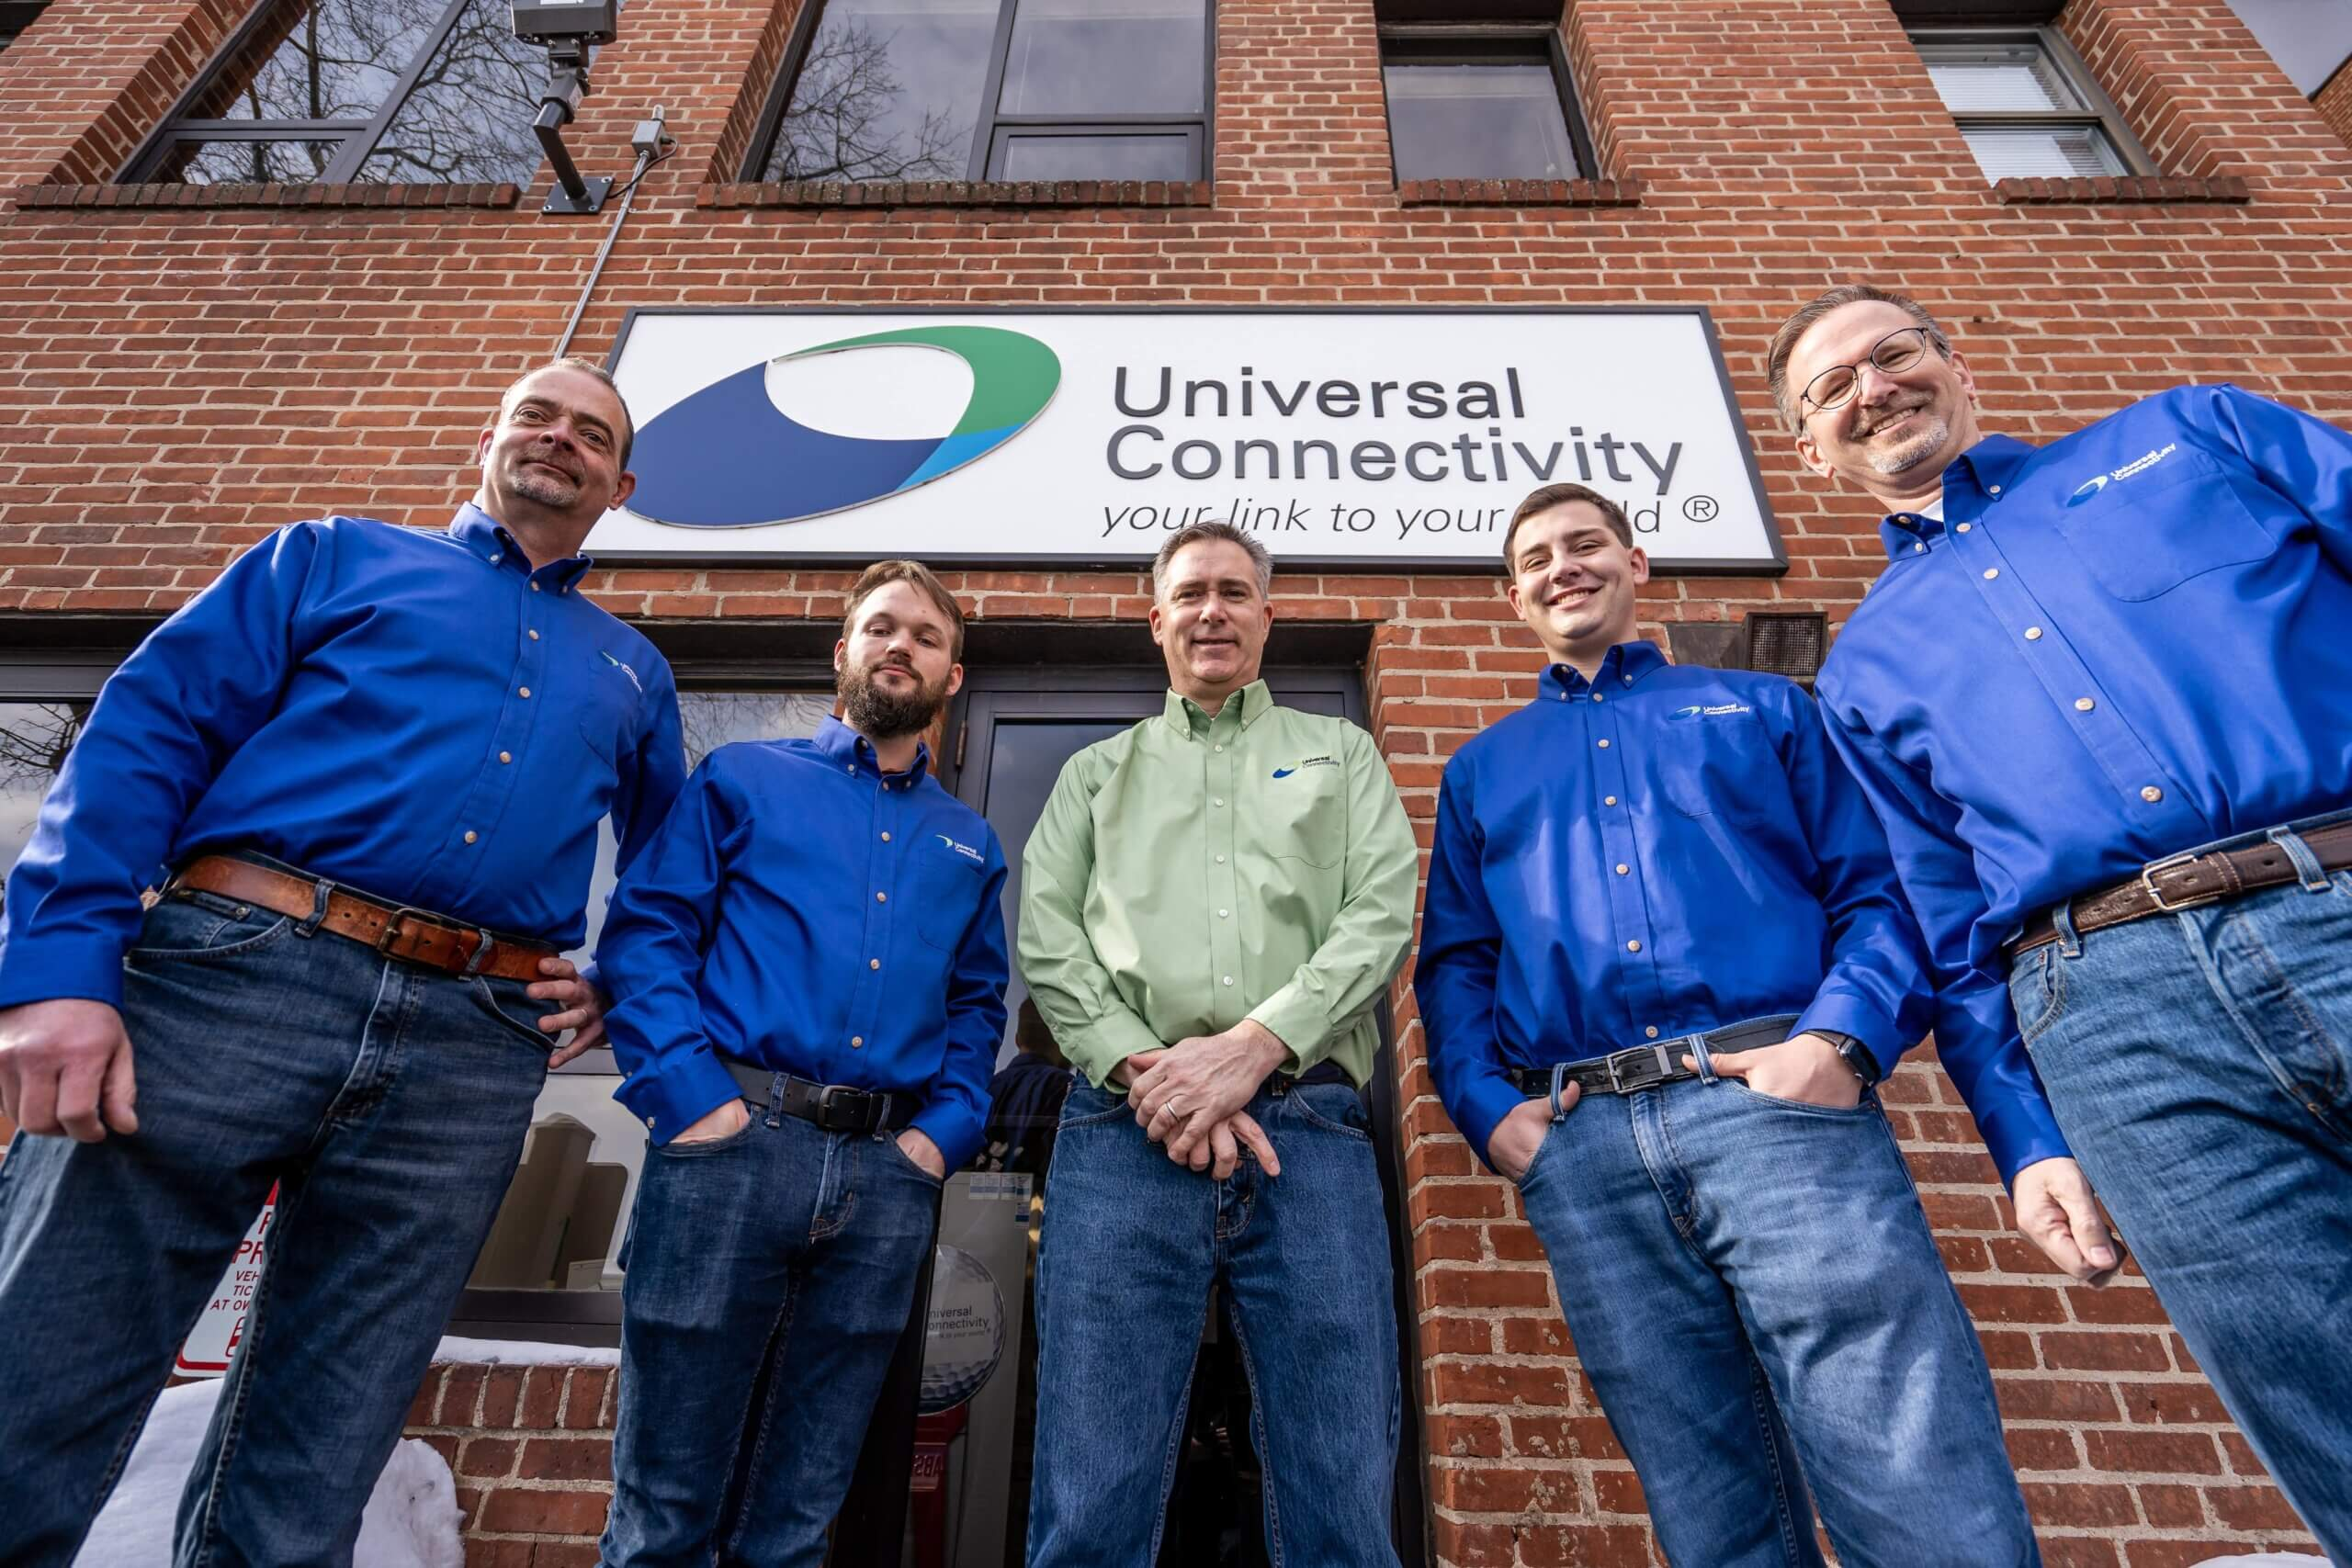 Universal Connectivity team members outside of building